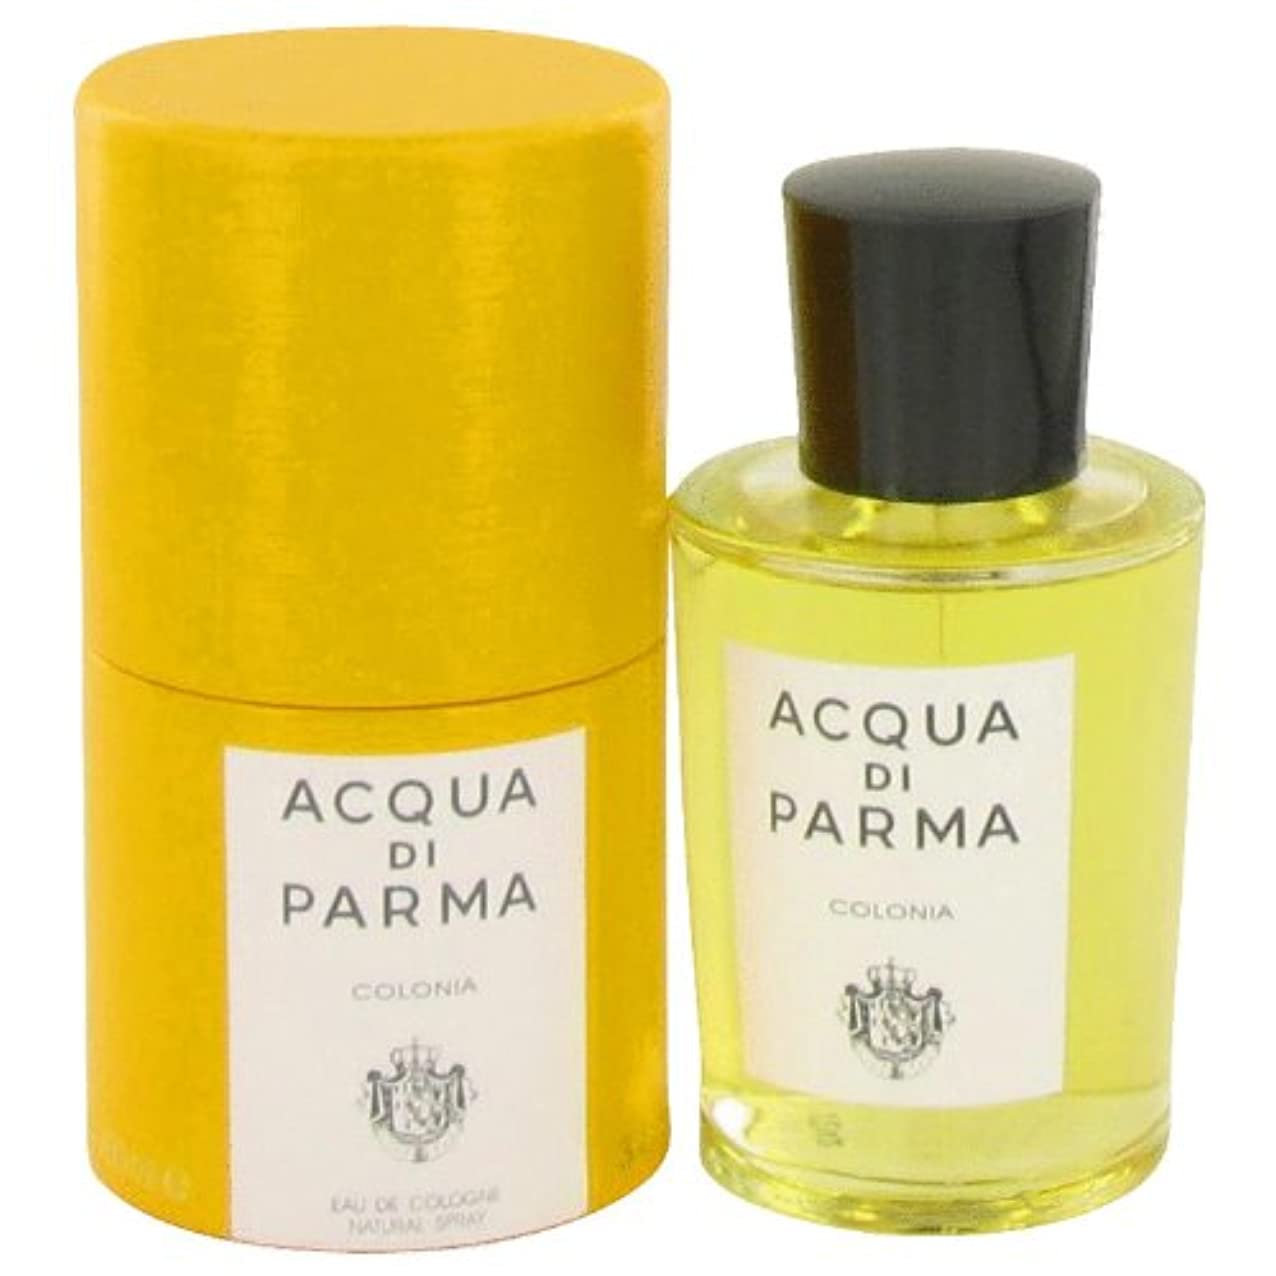 素晴らしい良い多くの骨折収穫Acqua Di Parma Colonia Eau De Cologne Spray By Acqua Di Parma